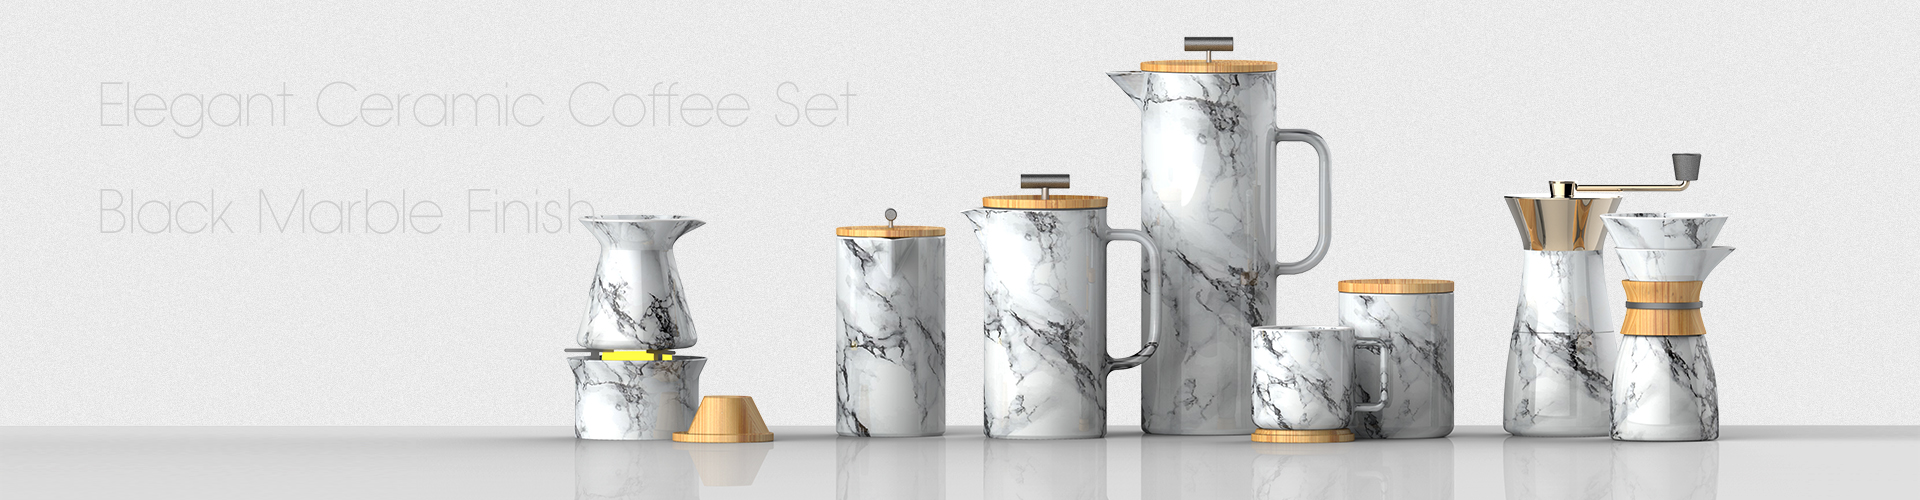 marble coffee set